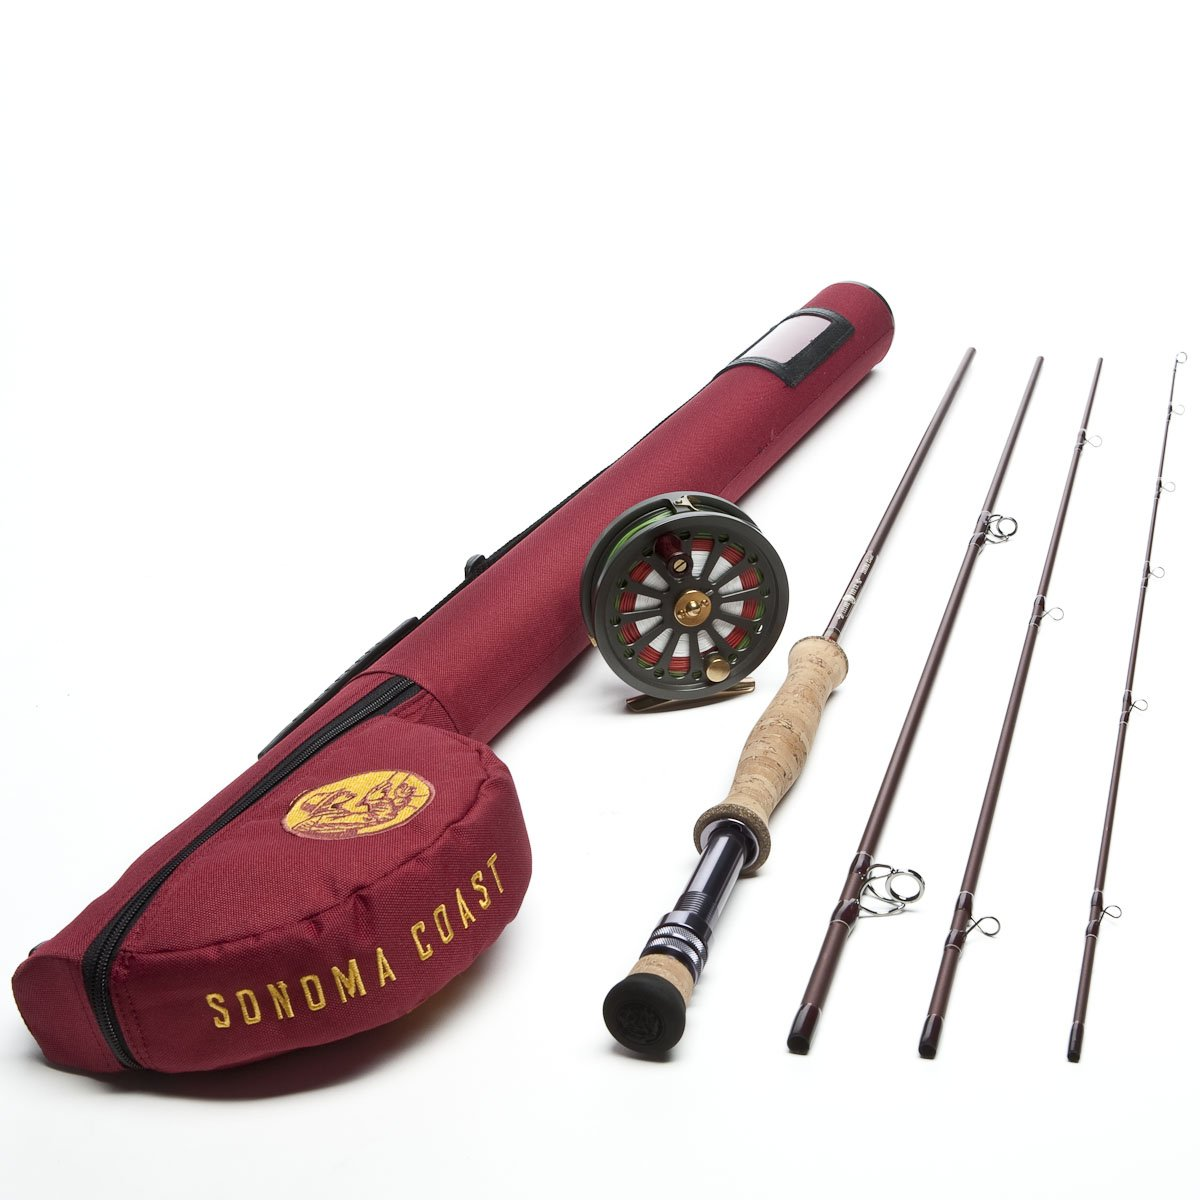 Leland Rod Co. Sonoma Coast Fly Fishing Outfit (The Fly Rod for Steelhead and Alaska)